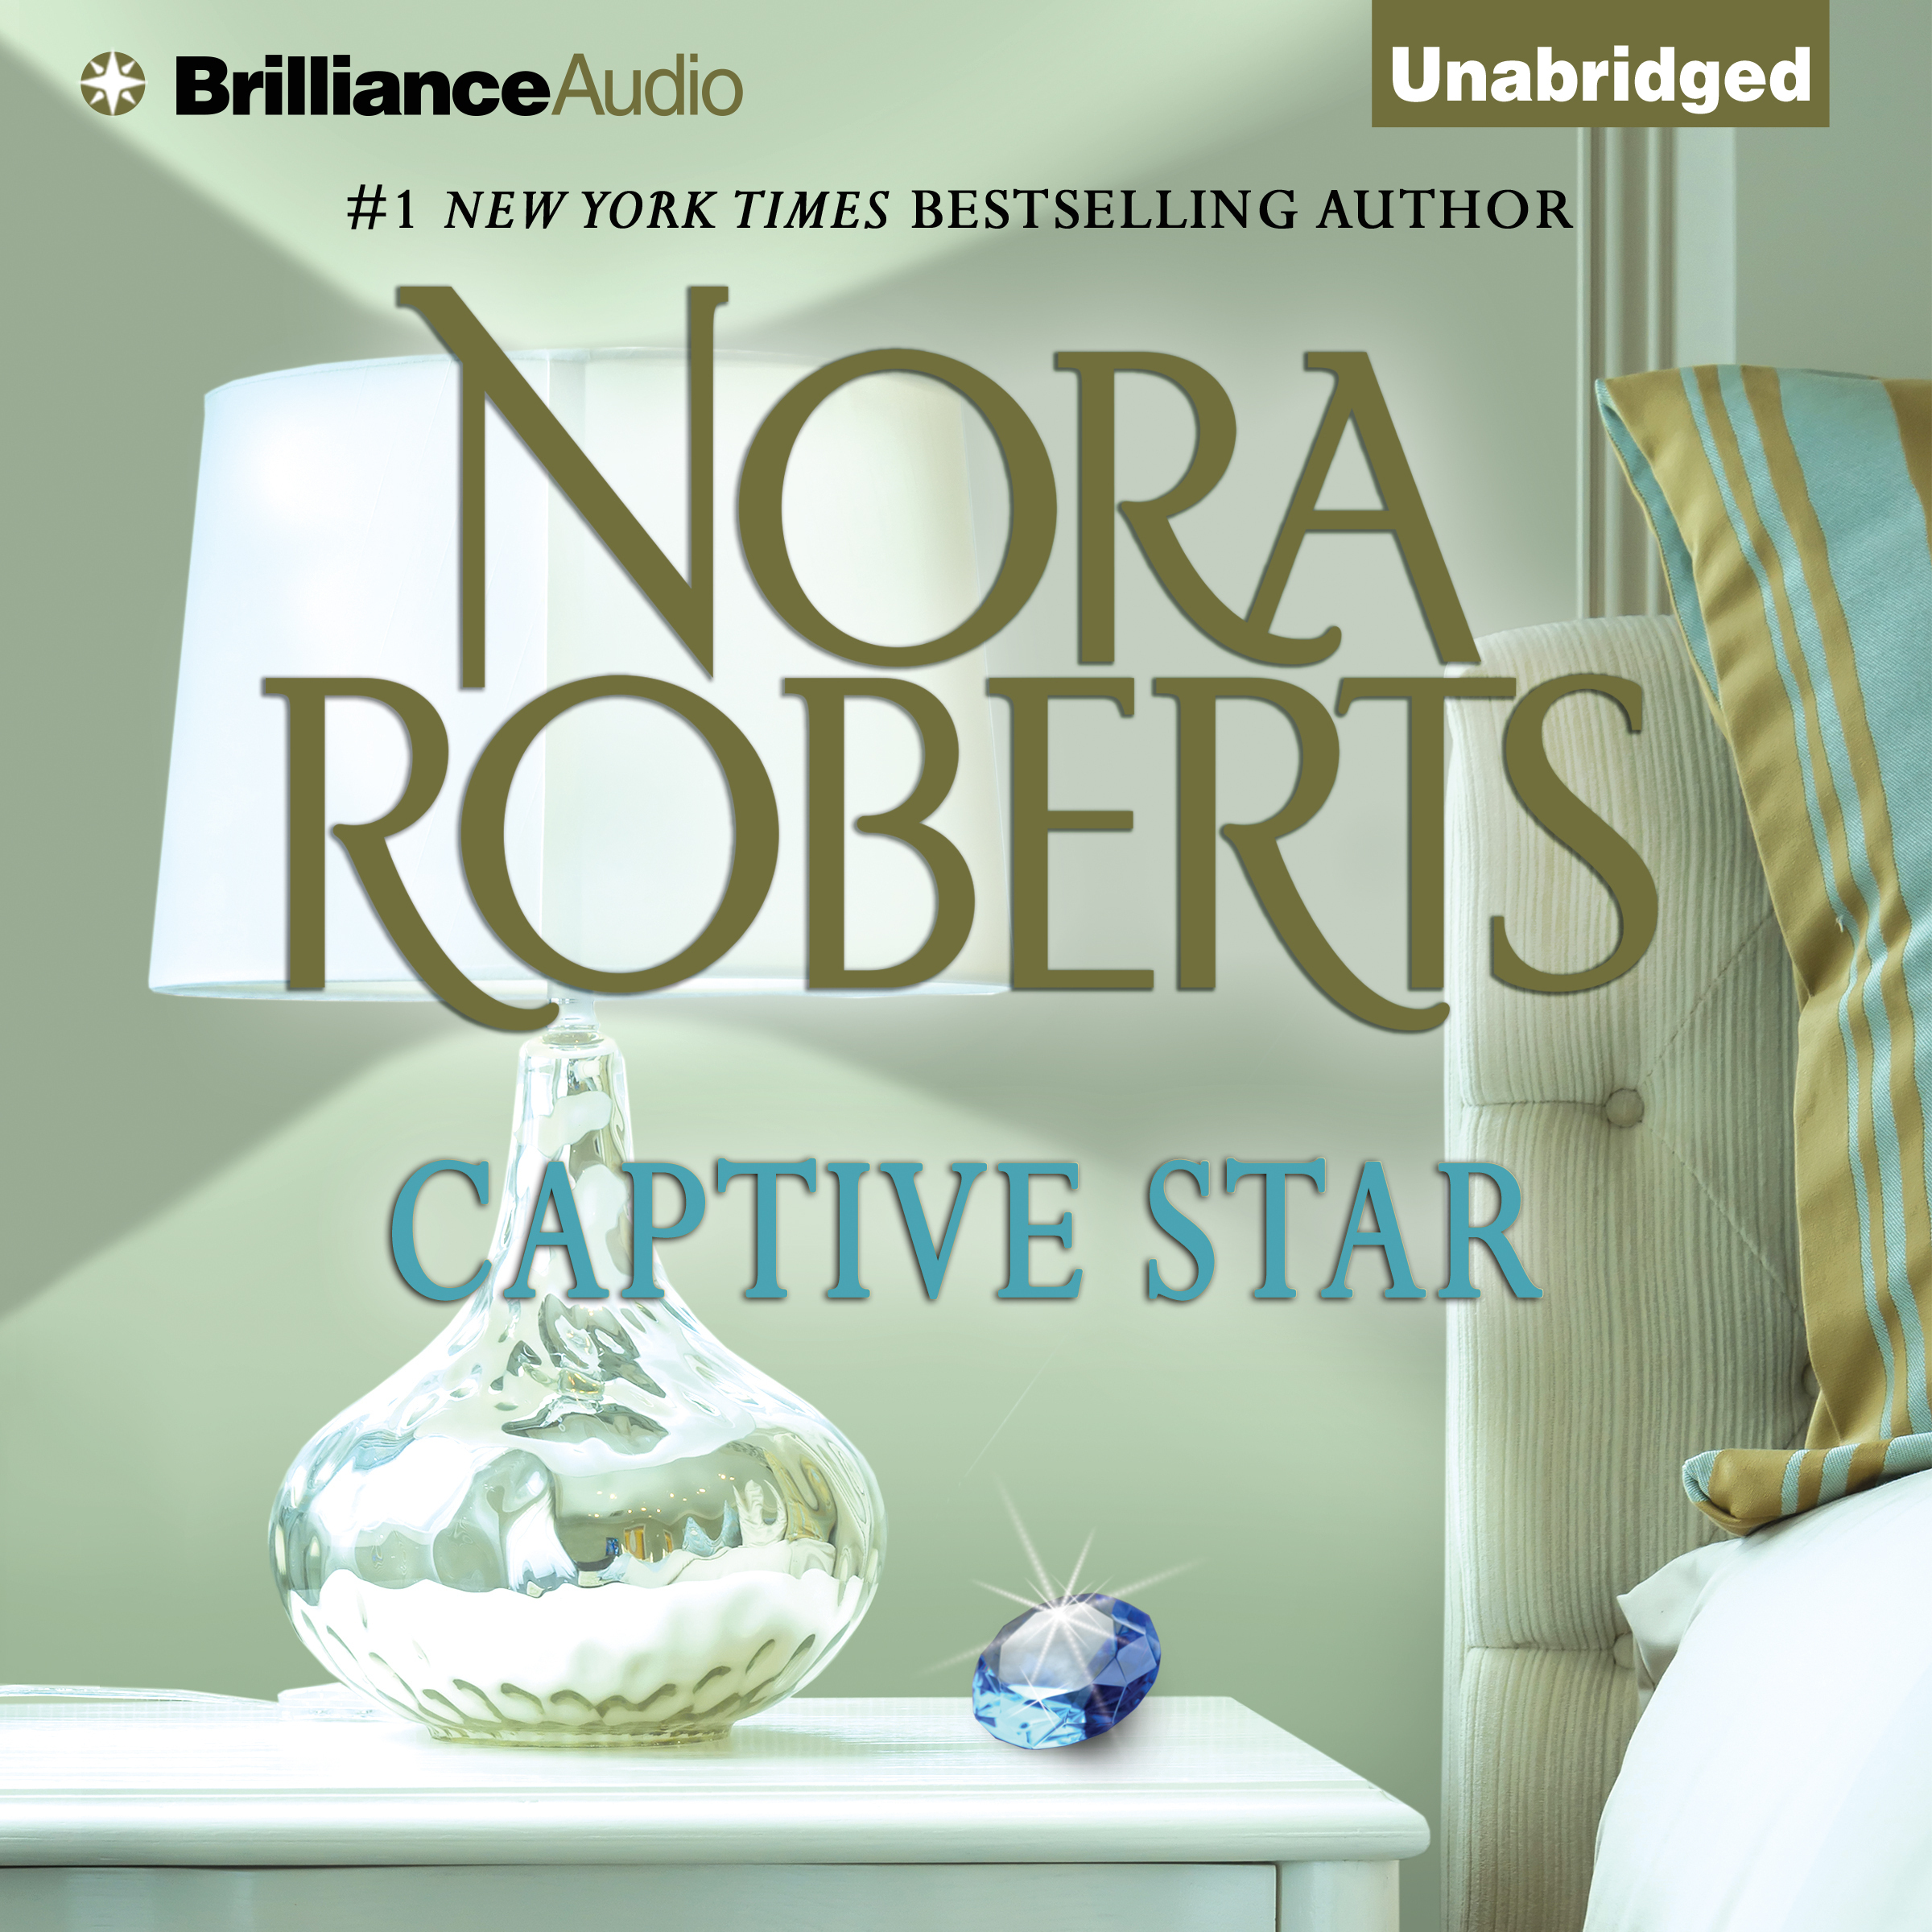 Nora roberts captive star series-3868